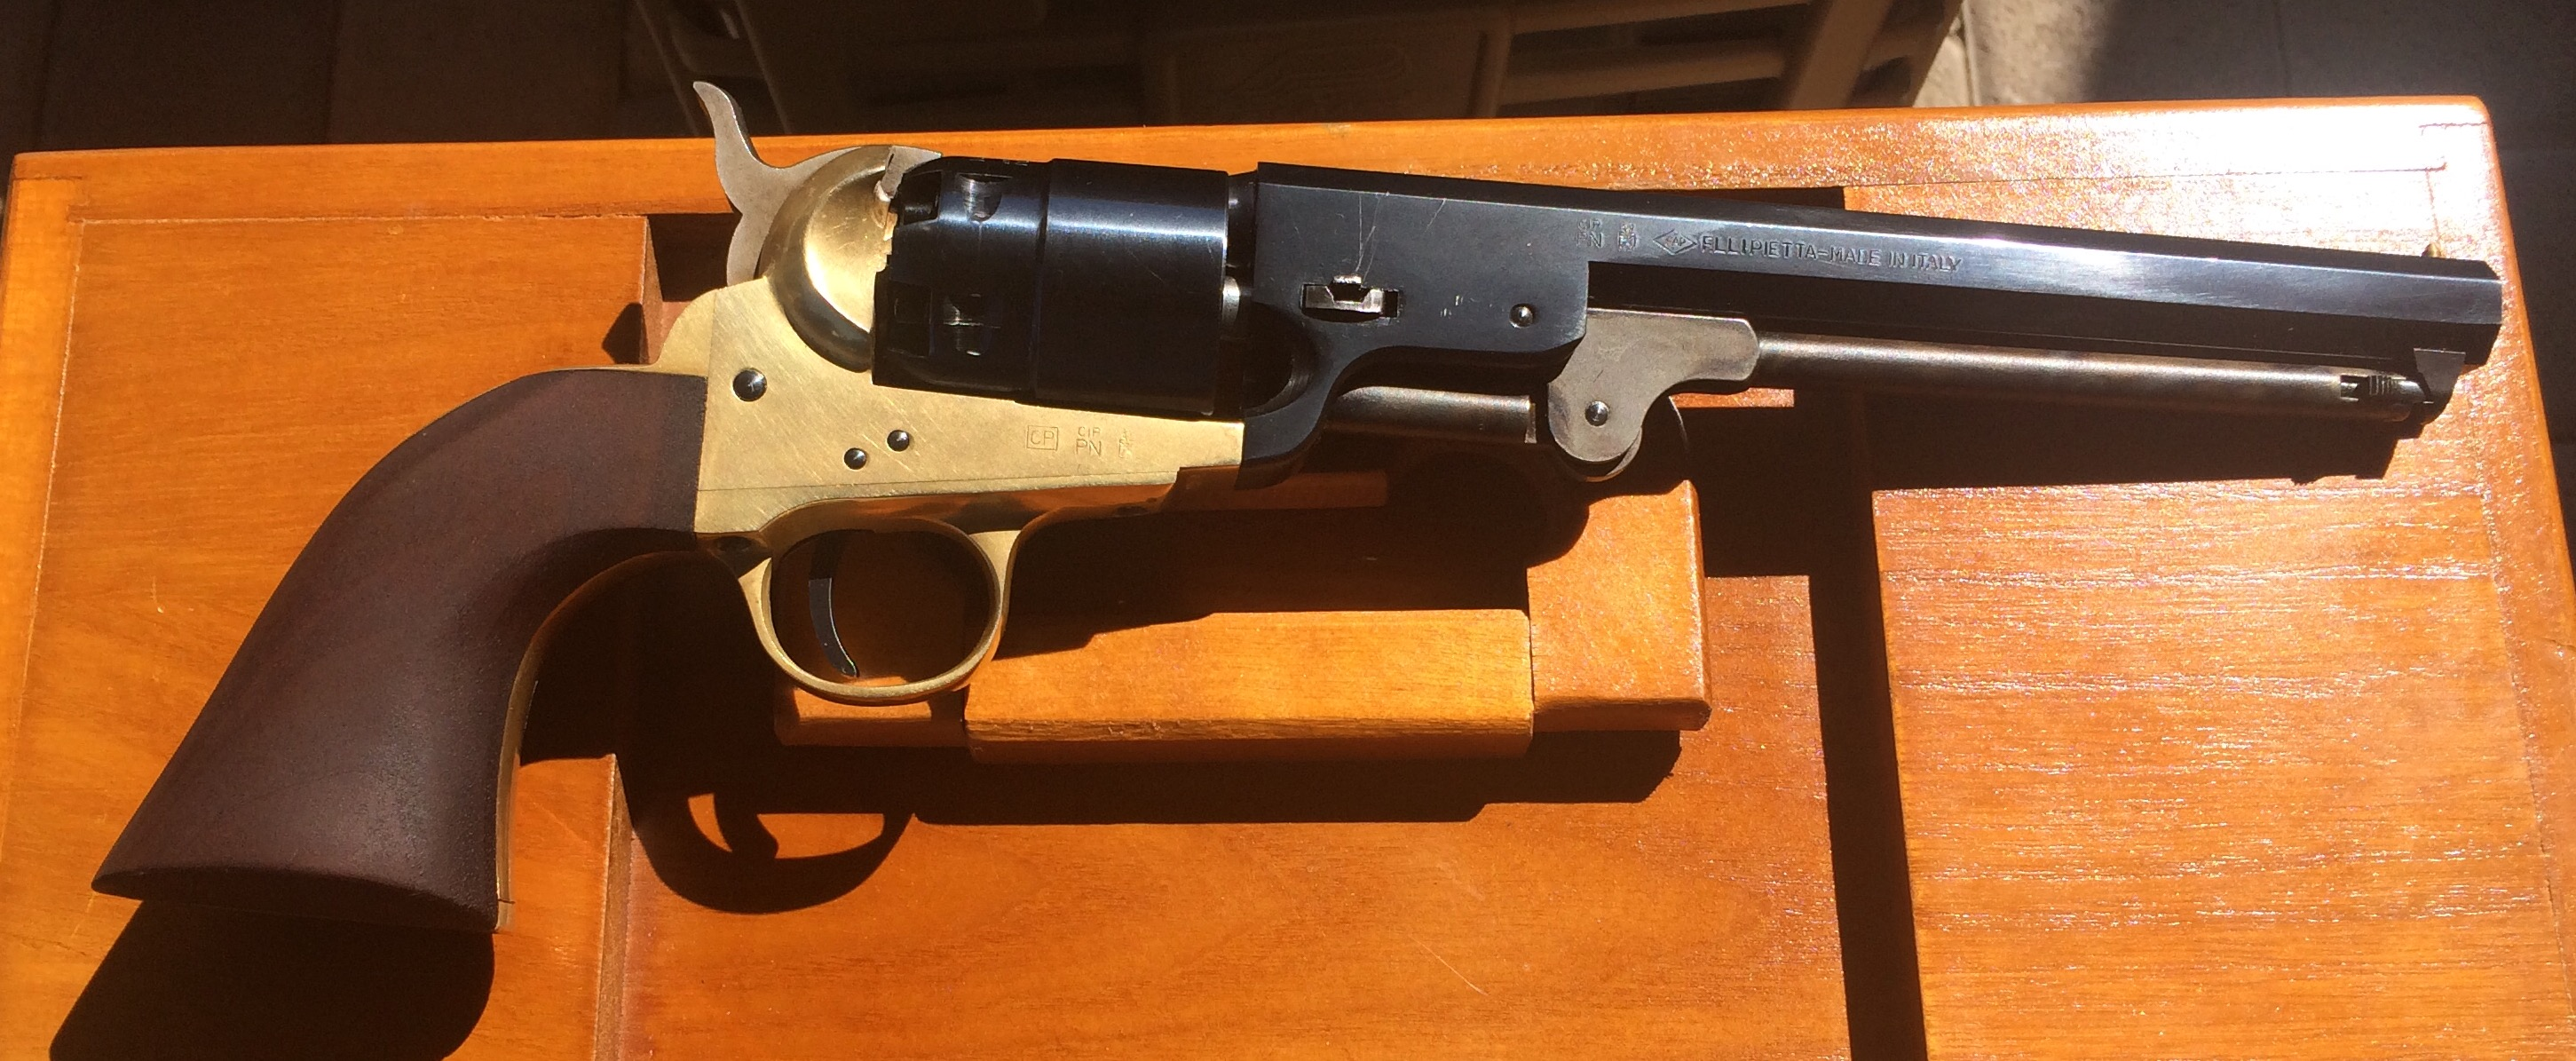 Pietta 1851 Navy Confederate  44 | Page 2 | The Firearms Forum - The